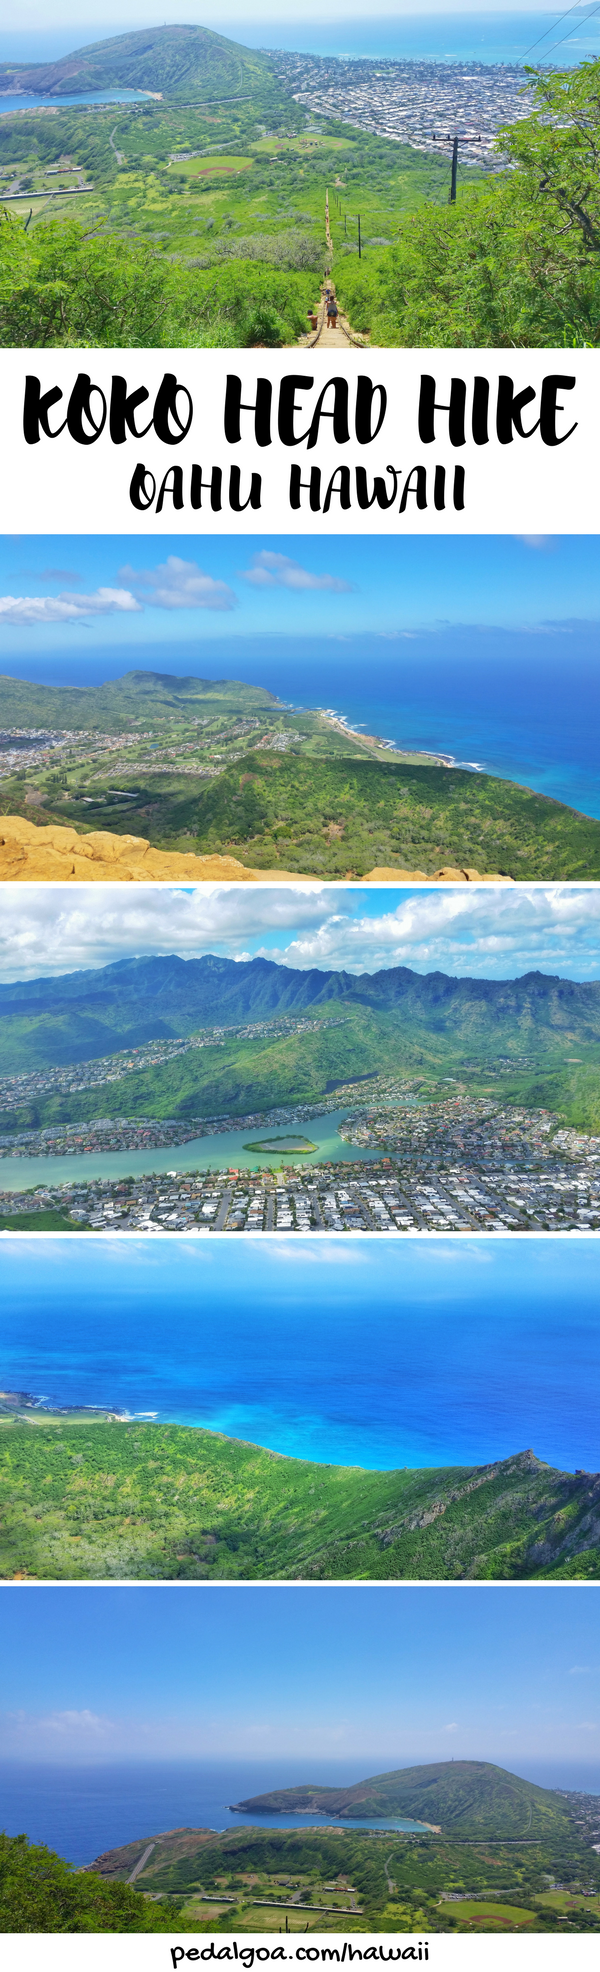 Koko Head Hike: Oahu, Hawaii, USA. For Oahu hikes during your Hawaii vacation, have a look at the Koko Head hike! This railway hiking trail is a top travel bucket list item for hiking in Hawaii USA and things to do on Oahu on Hawaii vacation. This hike is easy to get to from Waikiki and Honolulu, and there's snorkeling nearby at Hanauma Bay. Outdoor travel destinations and activities for budget adventures! Put hiking gear and outfits to wear on the Hawaii packing list!